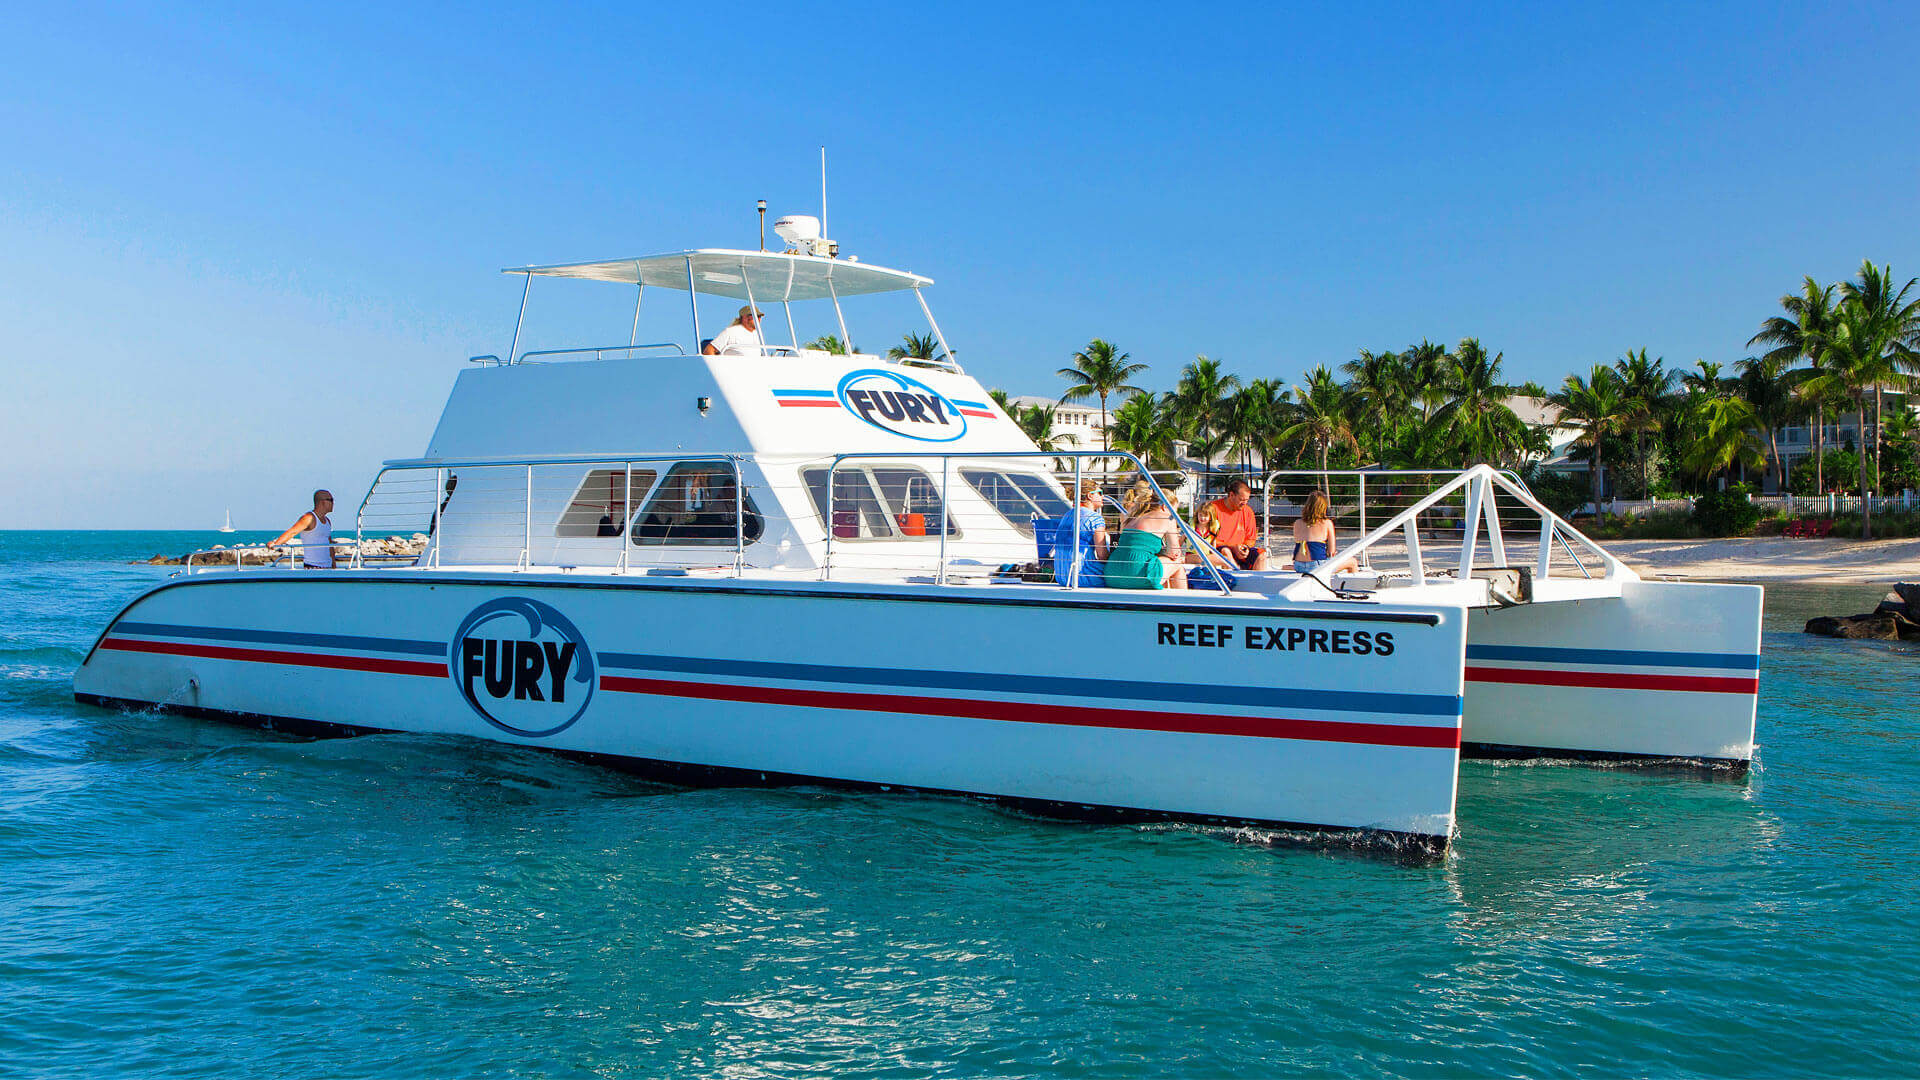 Key west express coupons 2019